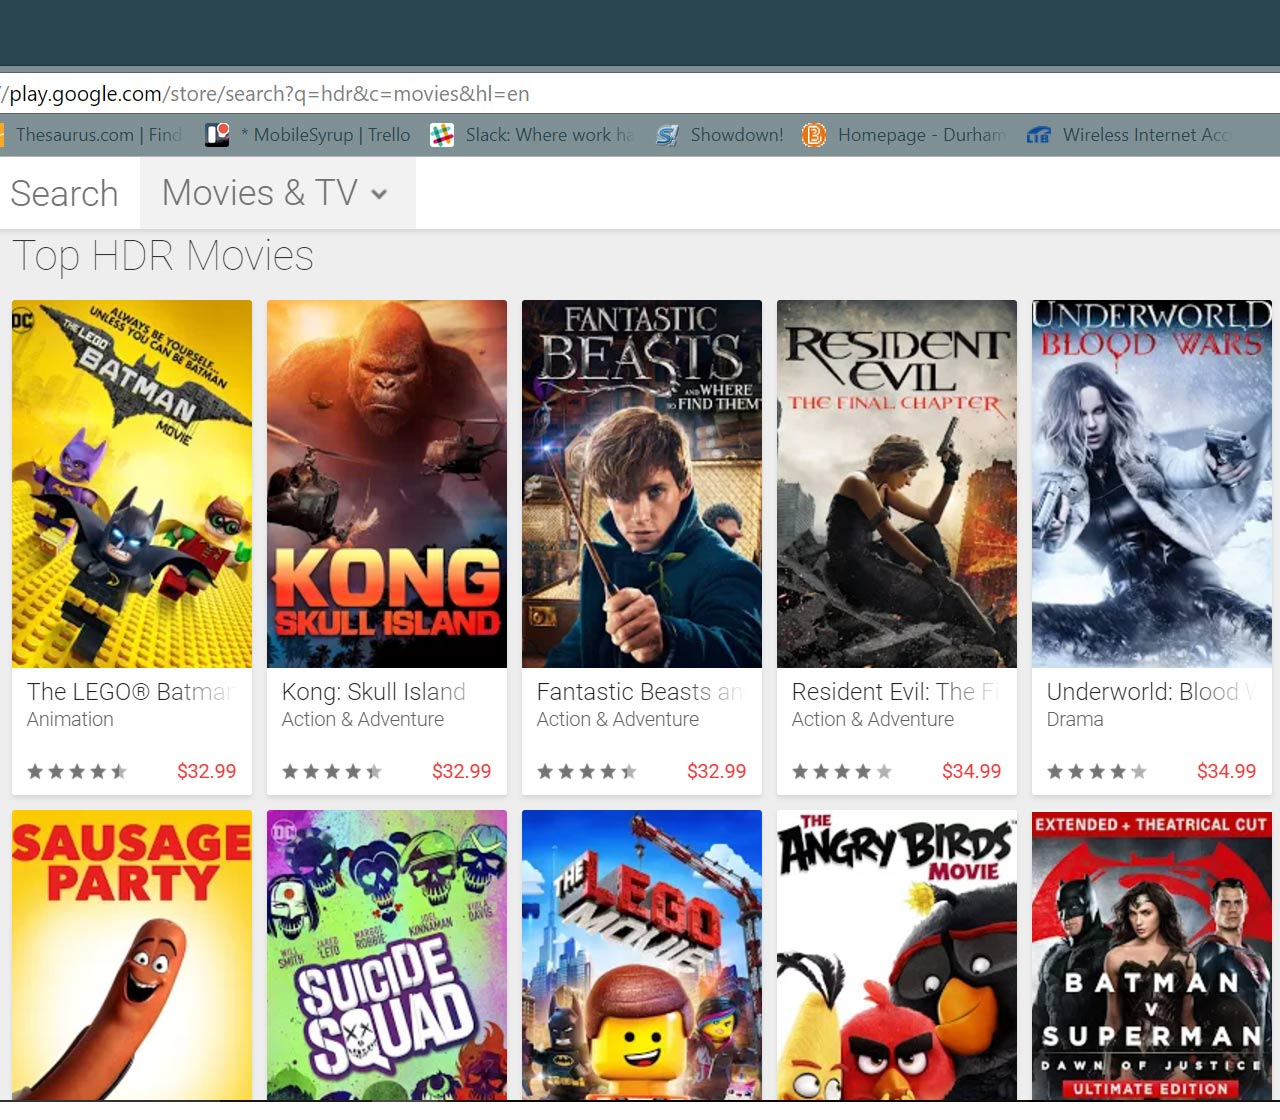 Google Play movies & TV HDR search results